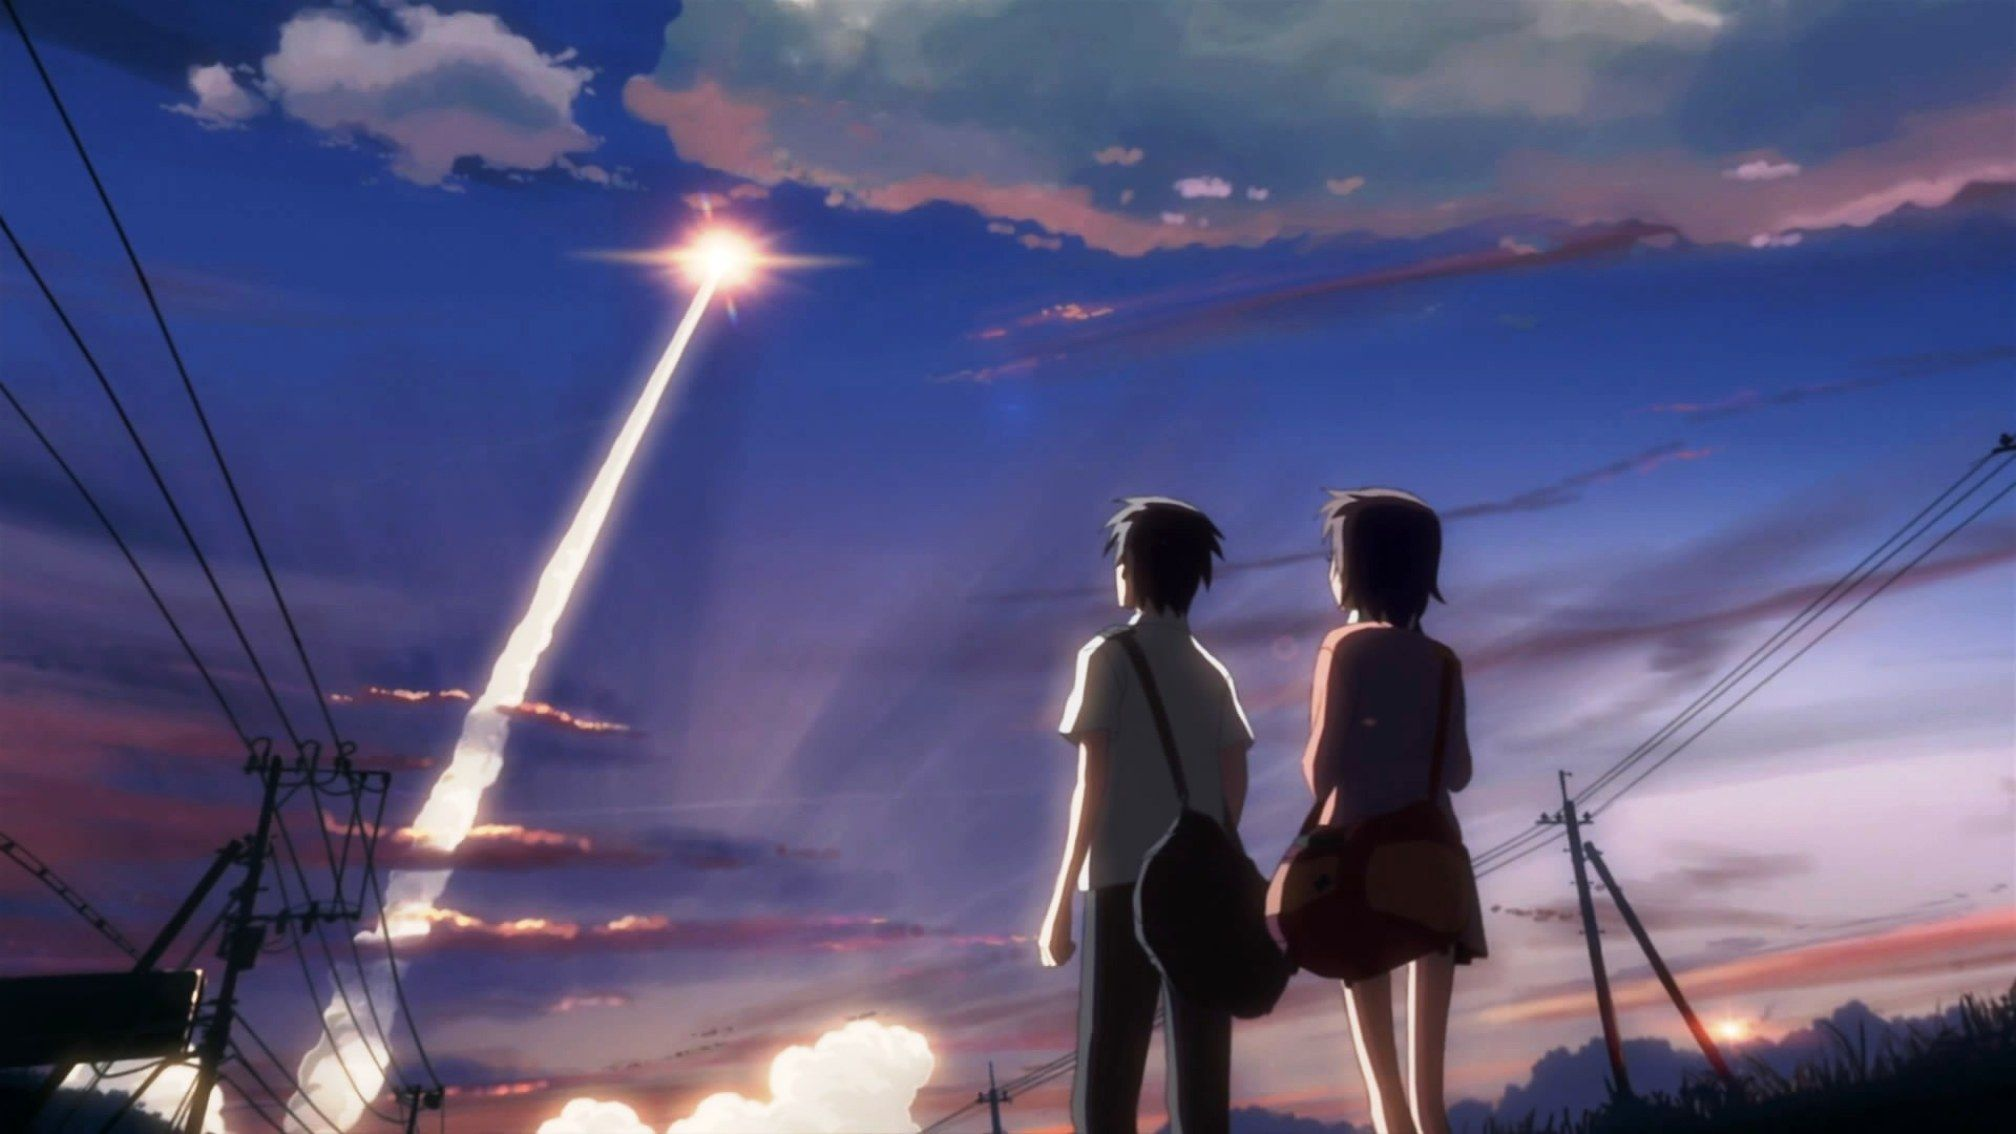 Anime 1920x1200 anime 5 Centimeters Per Second 桜の壁紙, 風景の